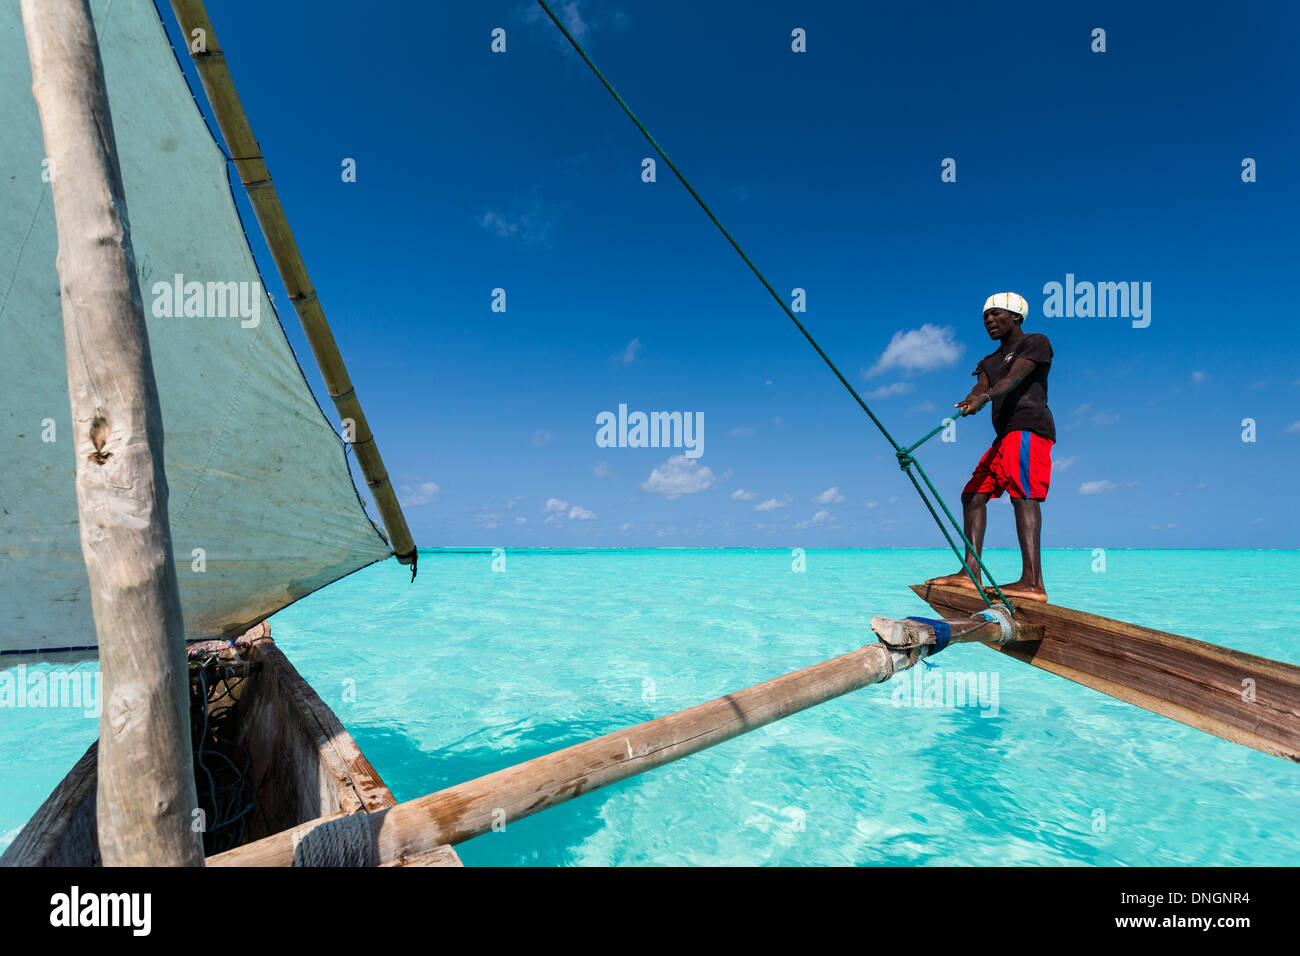 Sailing on a traditional dhow in Zanzibar, Tanzania - Stock Image